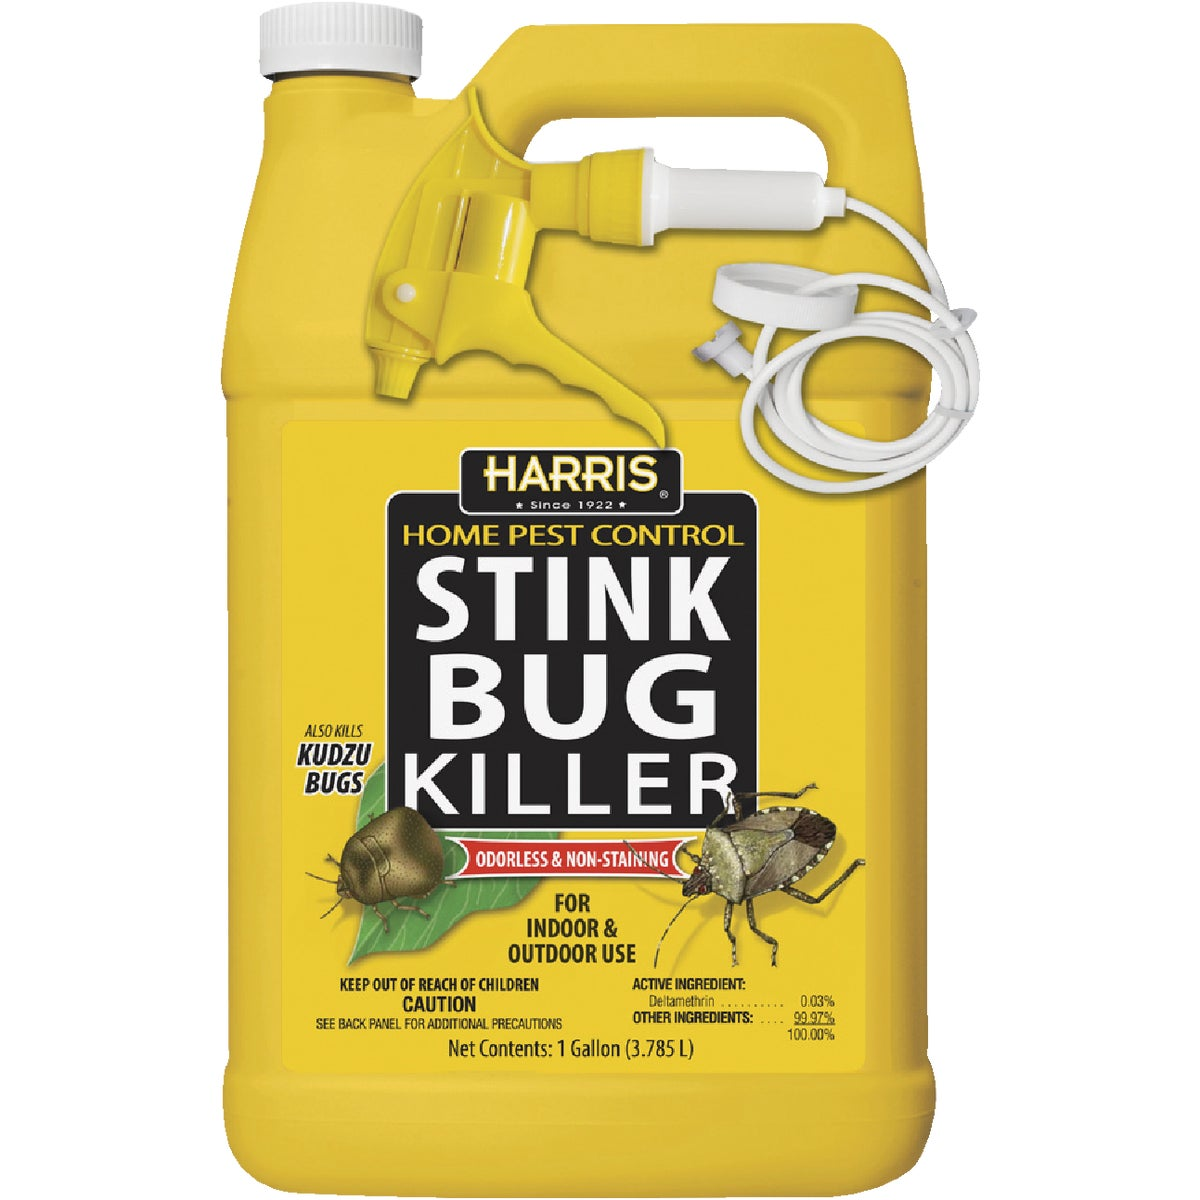 GAL STINK BUG KILLER - STINK-128 by Pf Harris Mfg Co Llc